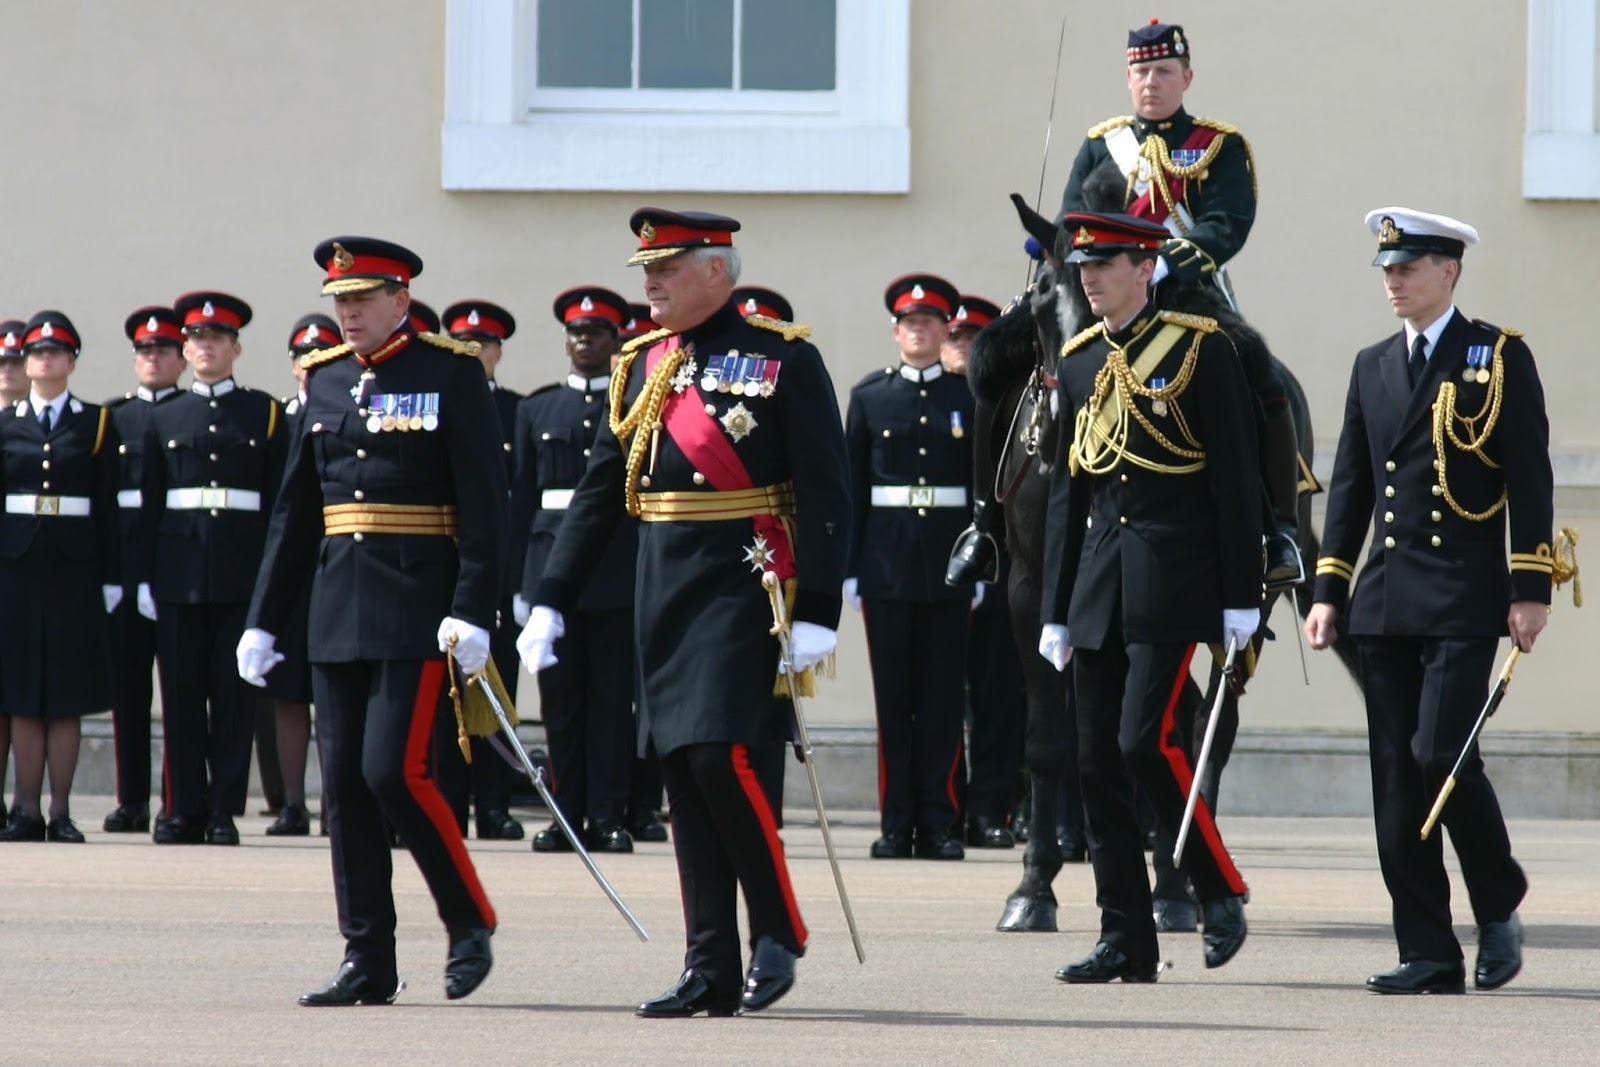 Various Diffe Patterns Of No 1 Dress Being Worn At The Royal Military Academy Sandhurst Front Row From Left To Right A Major General